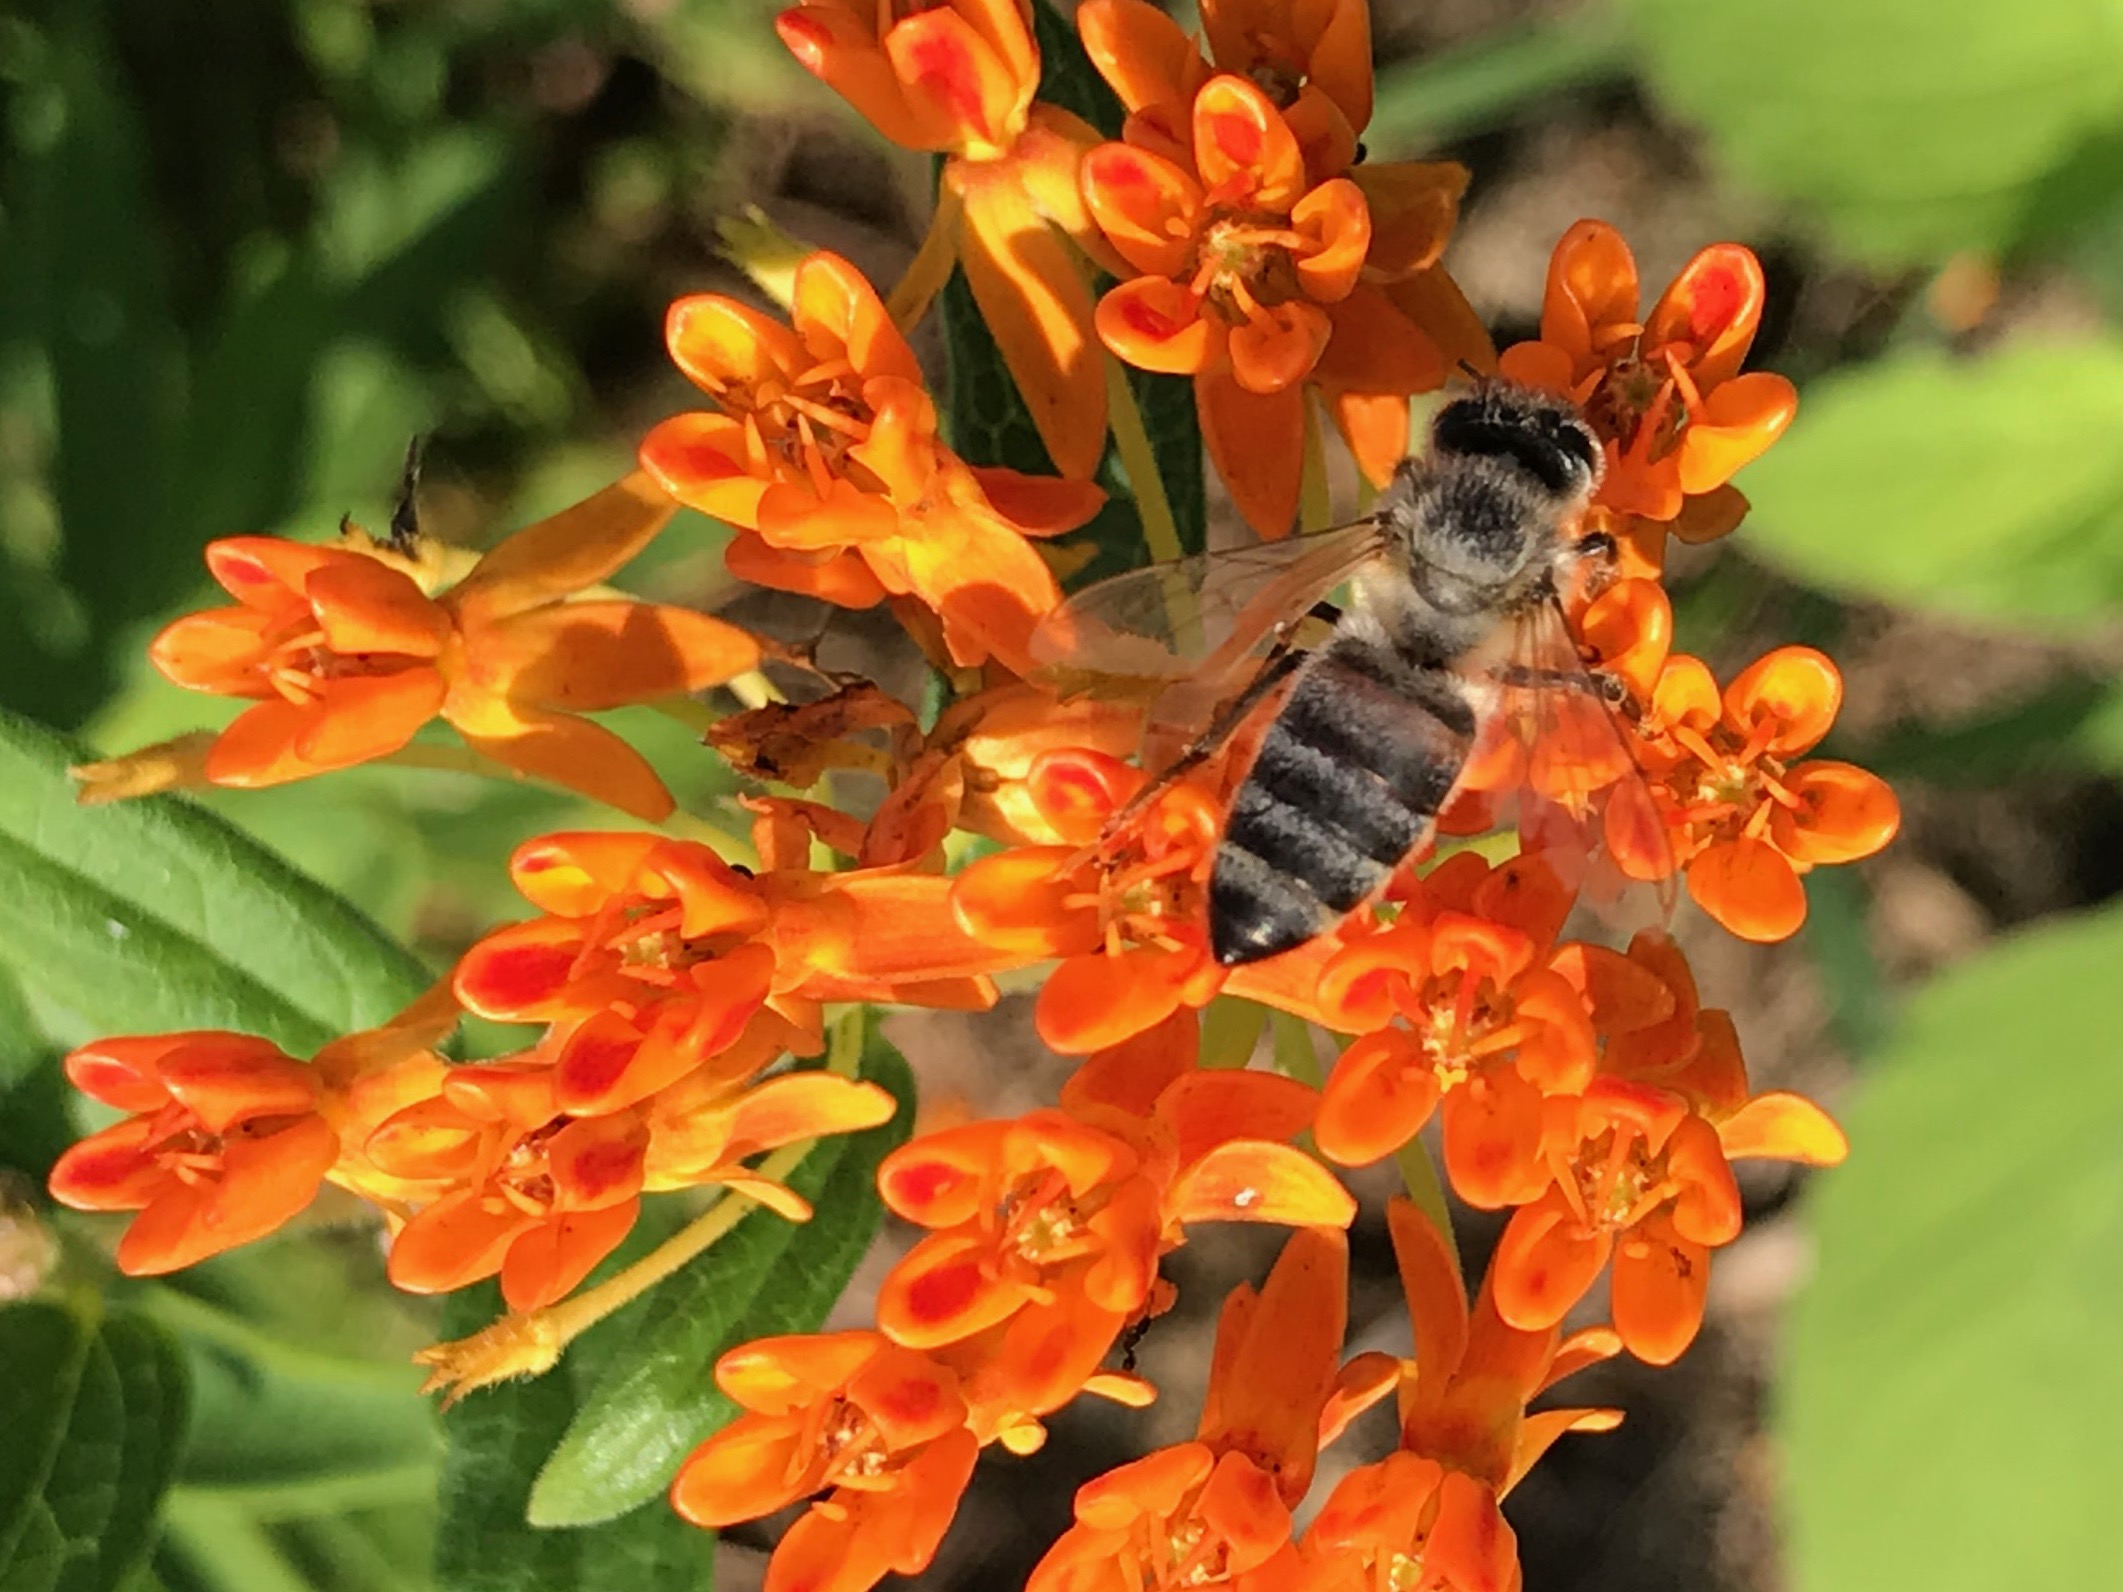 A honeybee sips nectar from the orange butterfly milkweed plant.